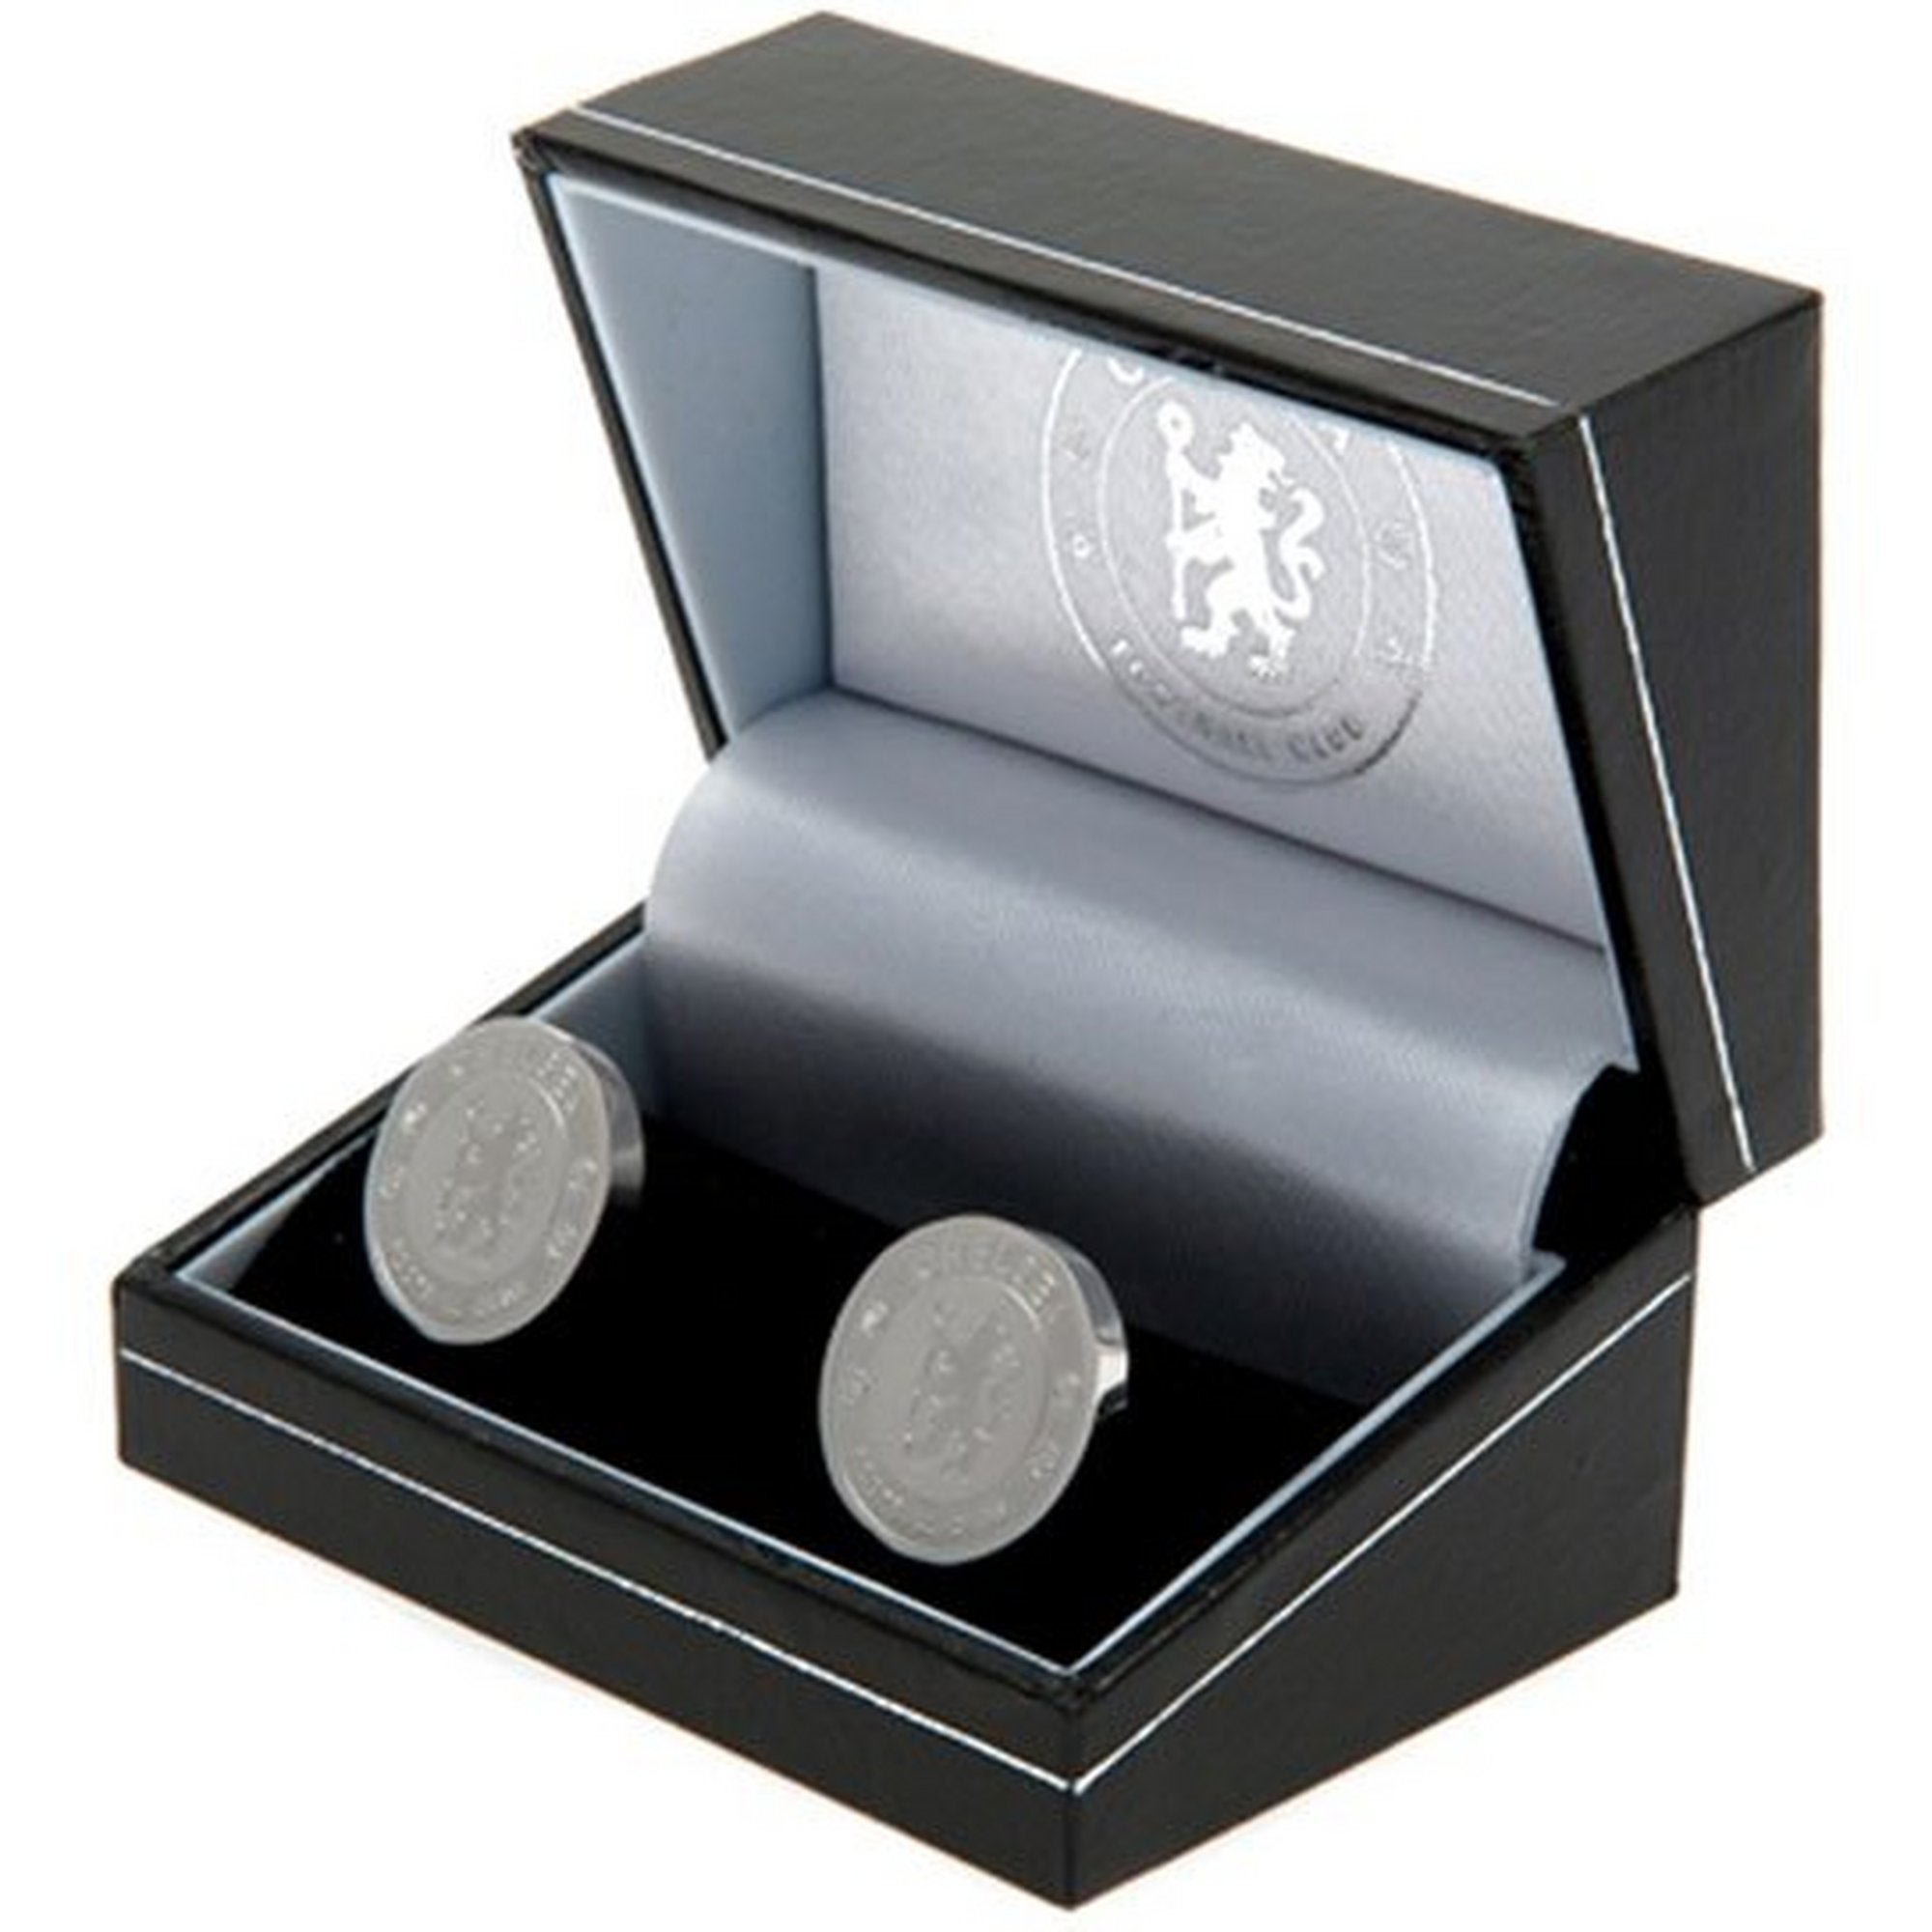 Image of Chelsea FC Stainless Steel Cufflinks